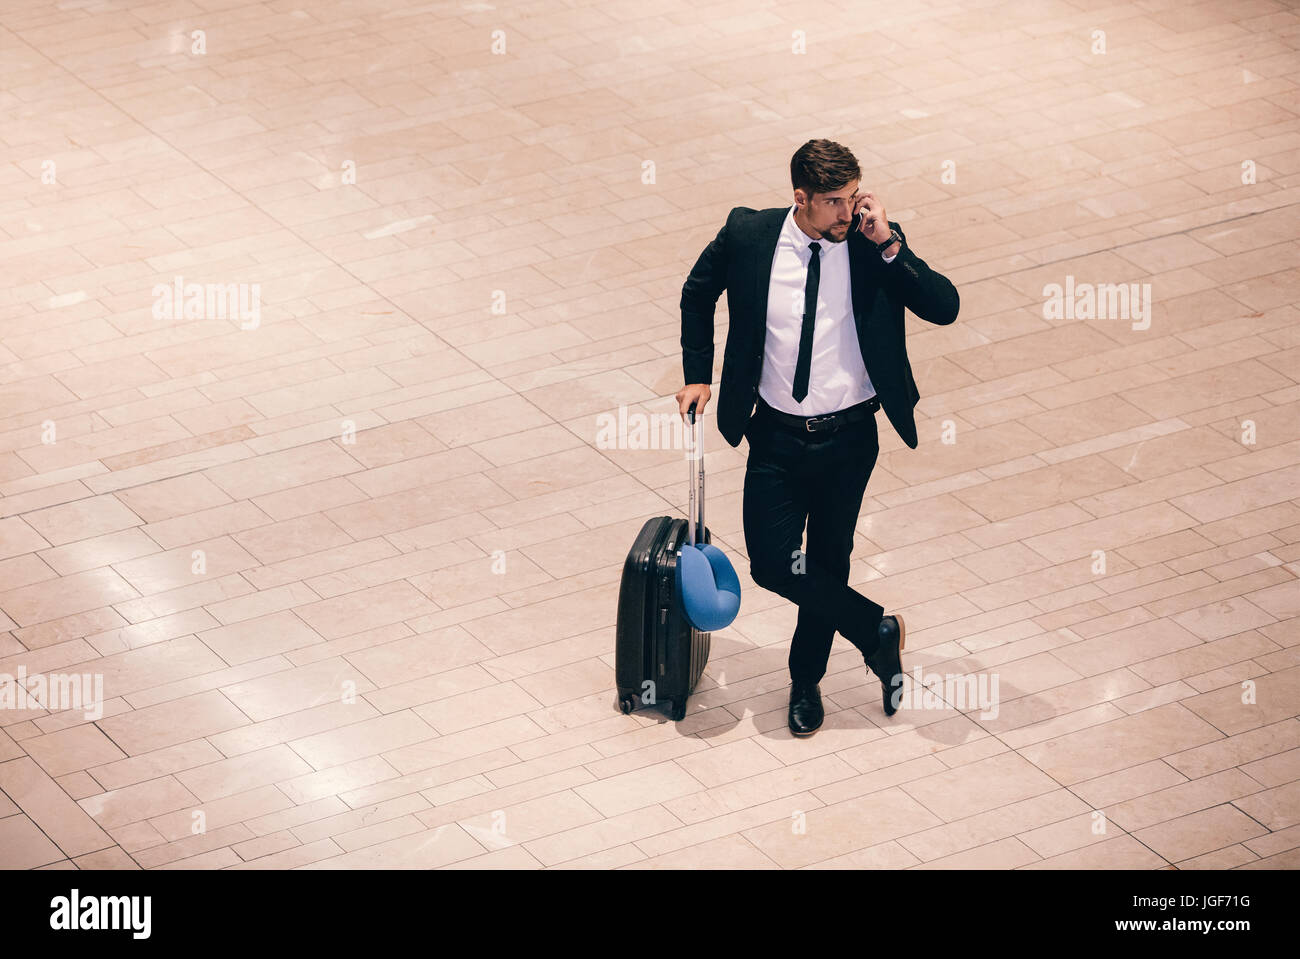 Top view shot of young businessman standing at airport terminal with suitcase and talking on phone. Business traveler - Stock Image